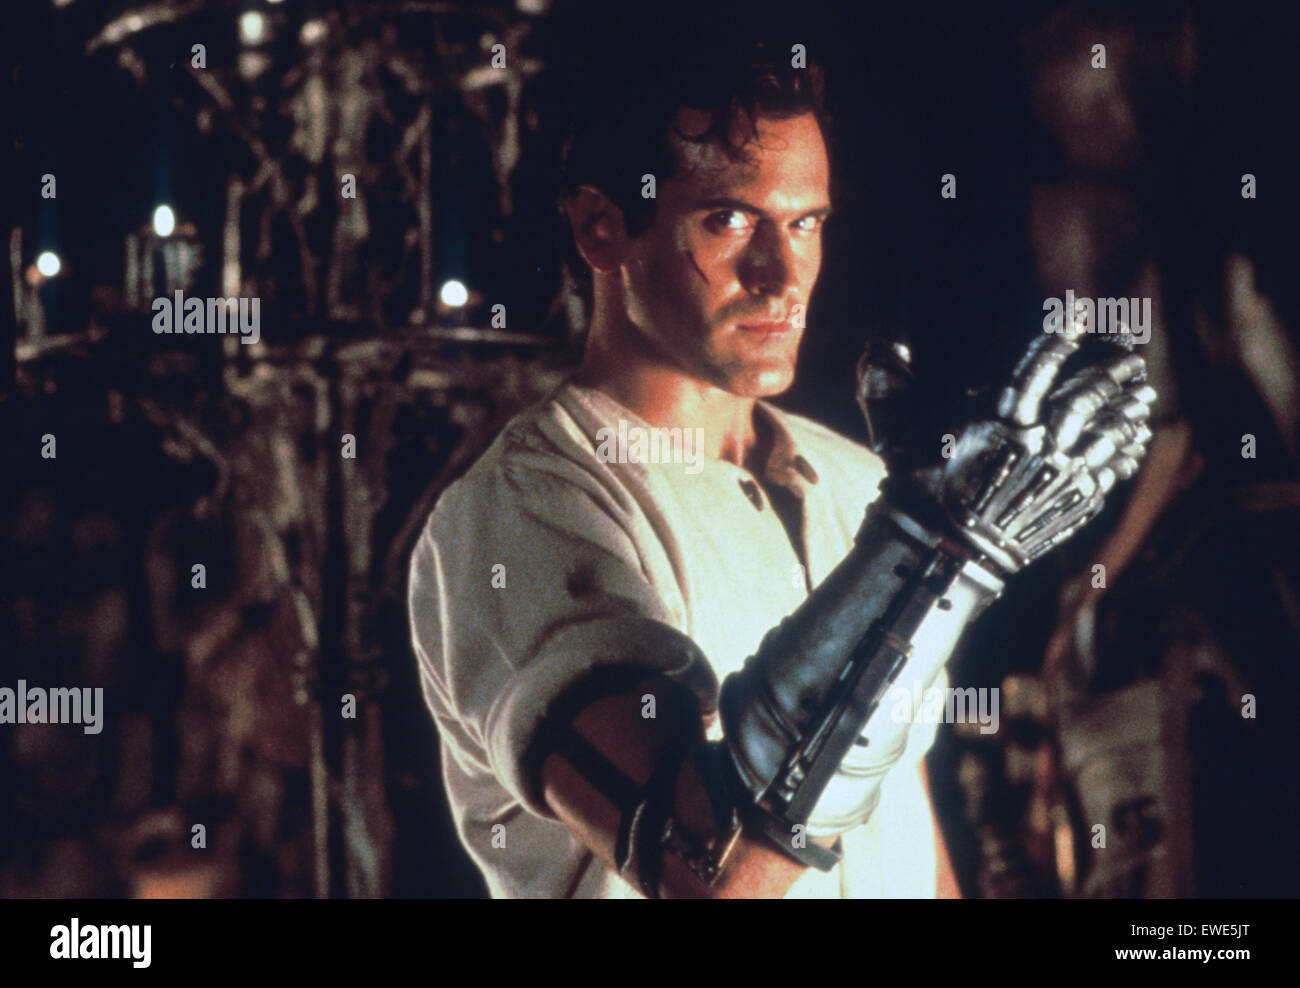 army of darkness - Stock Image